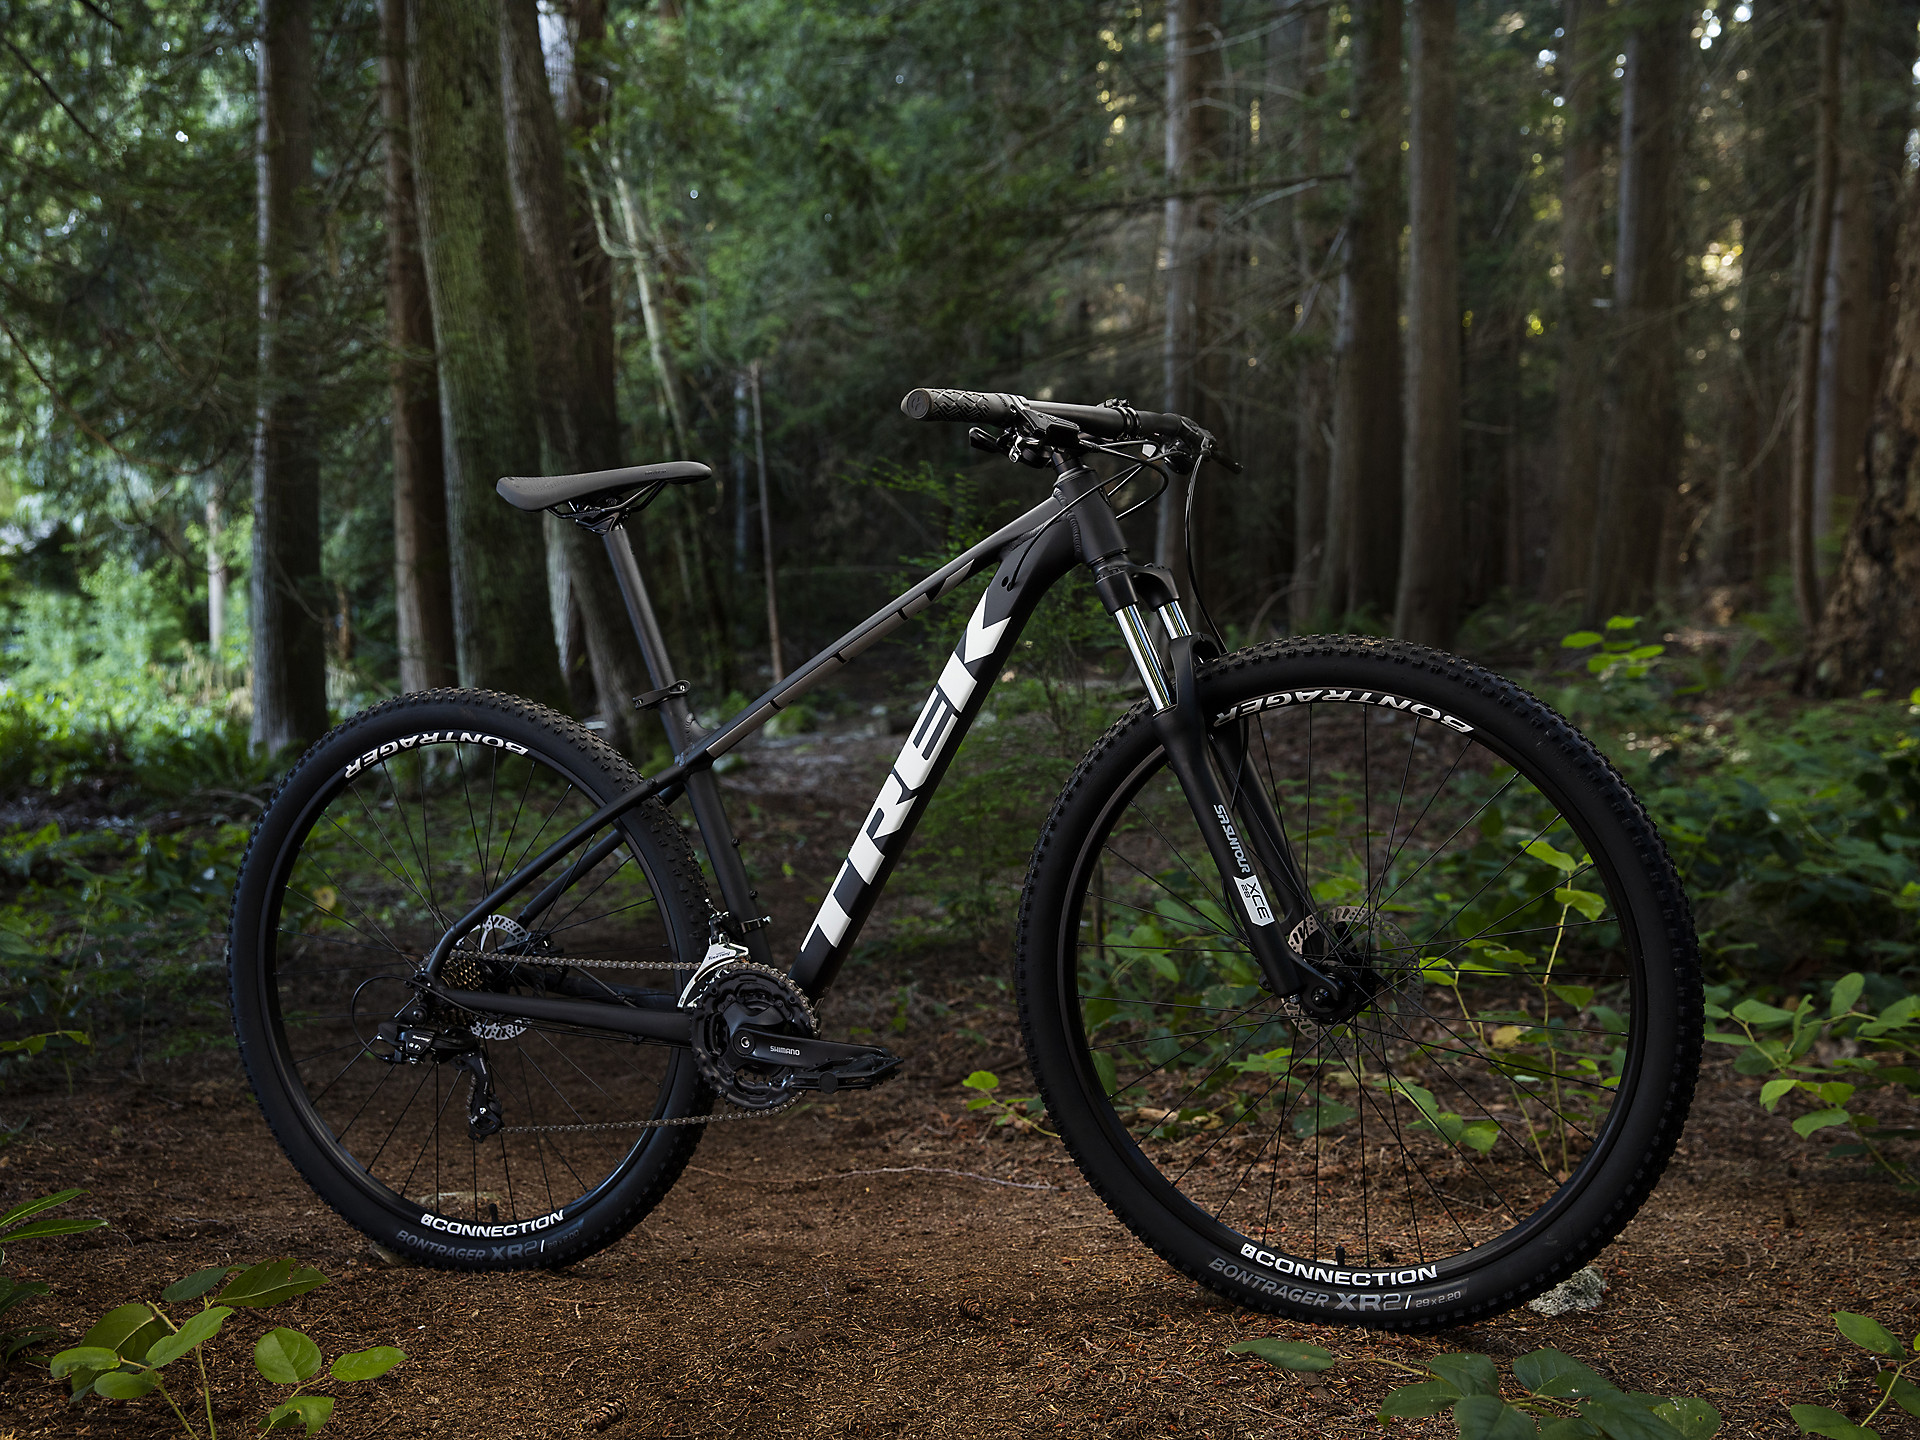 Trek Marlin 5 Hardtail Mountain Bike at a forest